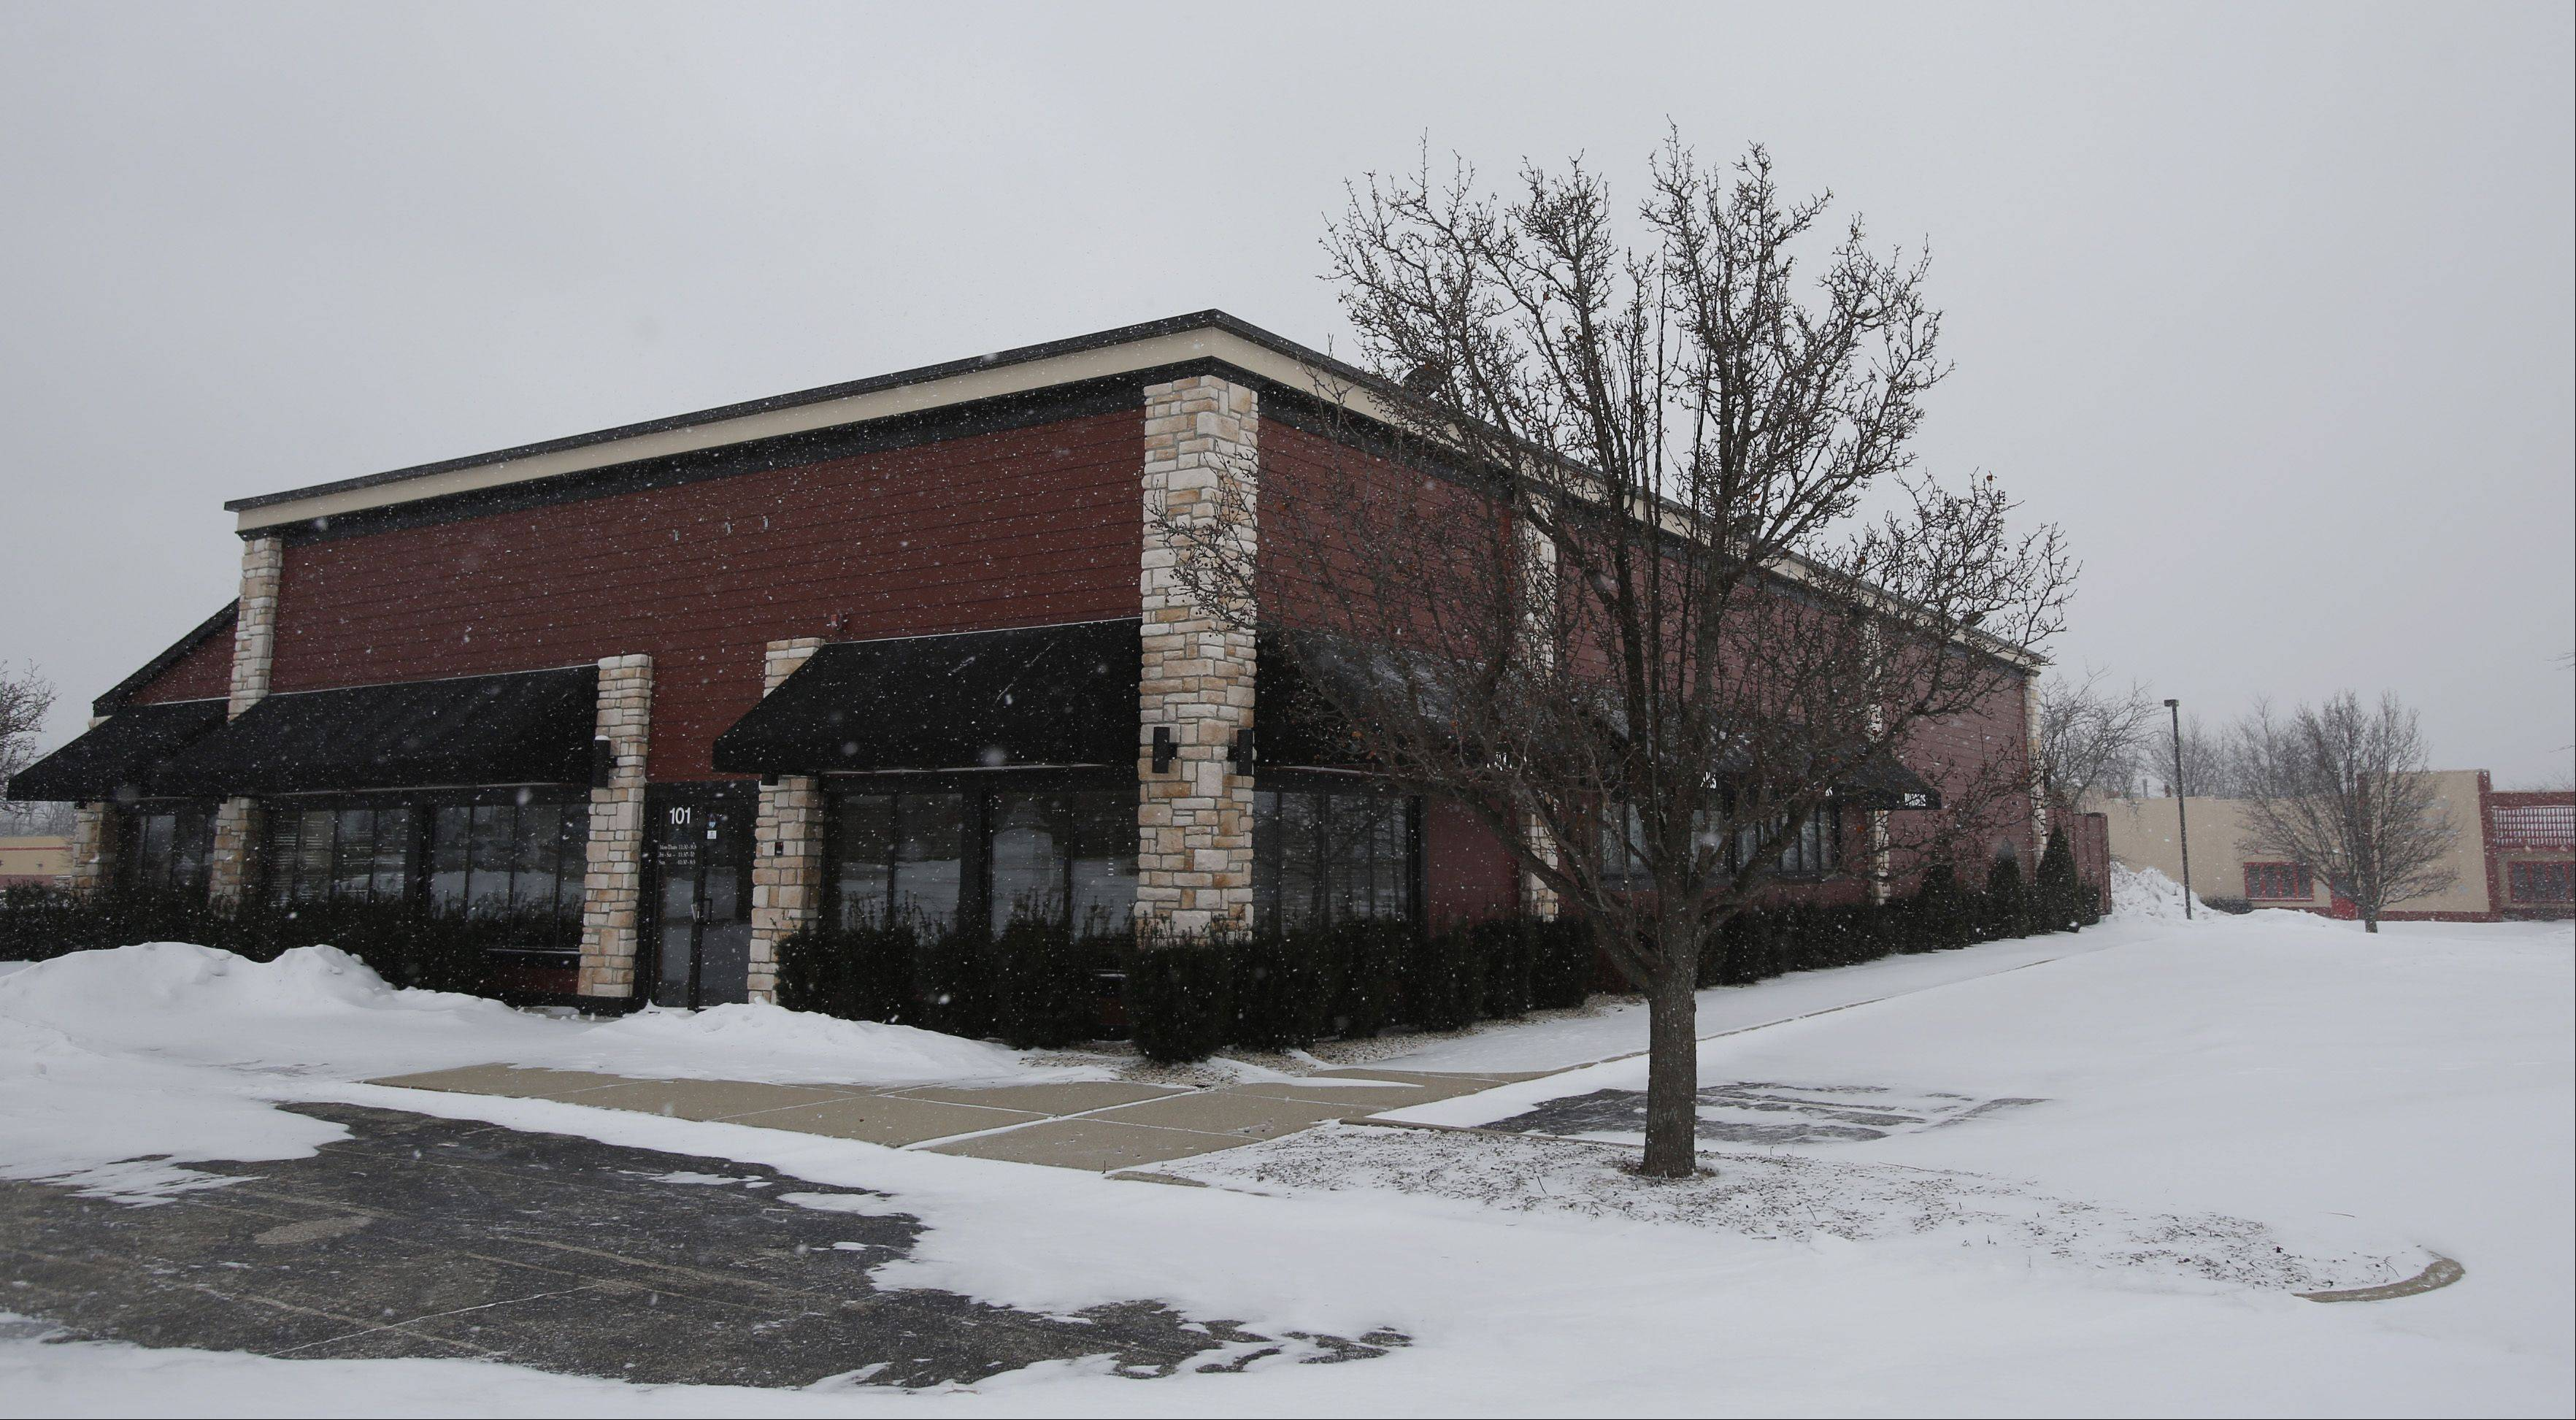 A new Panera Bread location will be opening at this former restaurant location on the east side of the Spring Hill Mall property.